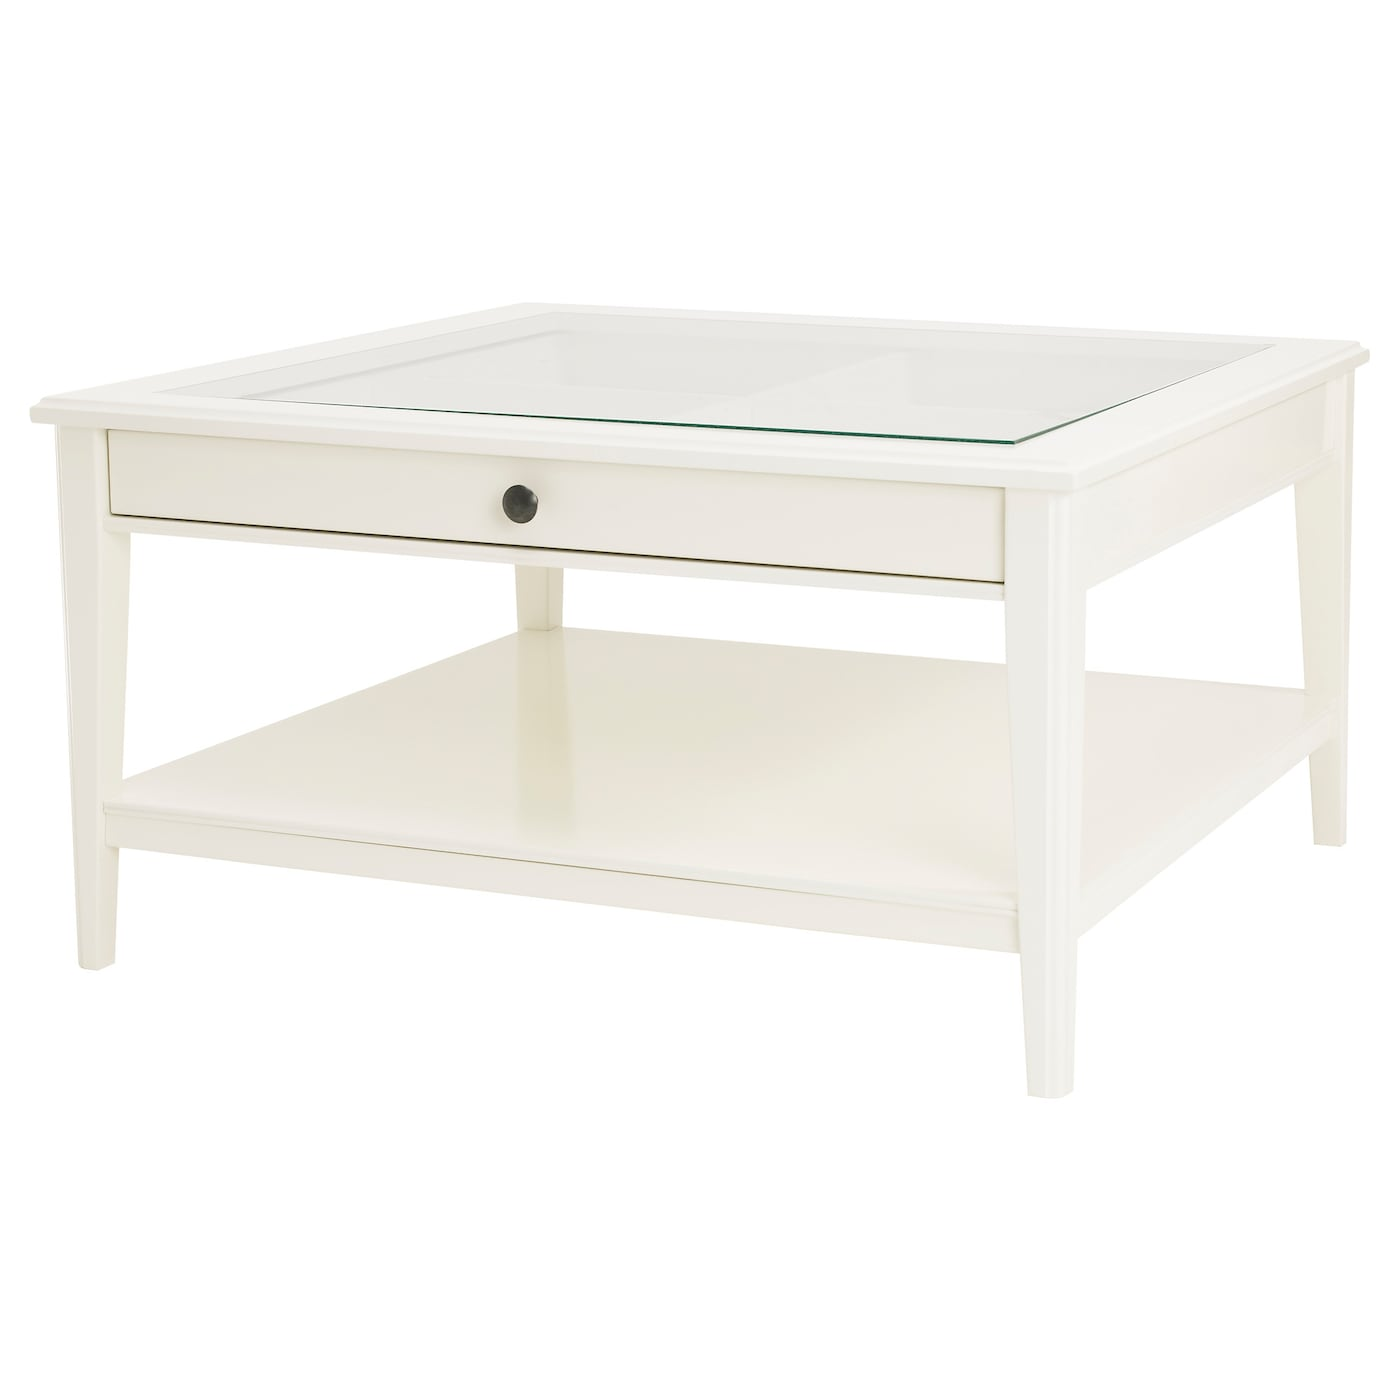 Liatorp coffee table white glass 93x93 cm ikea - Table basse coffre ikea ...